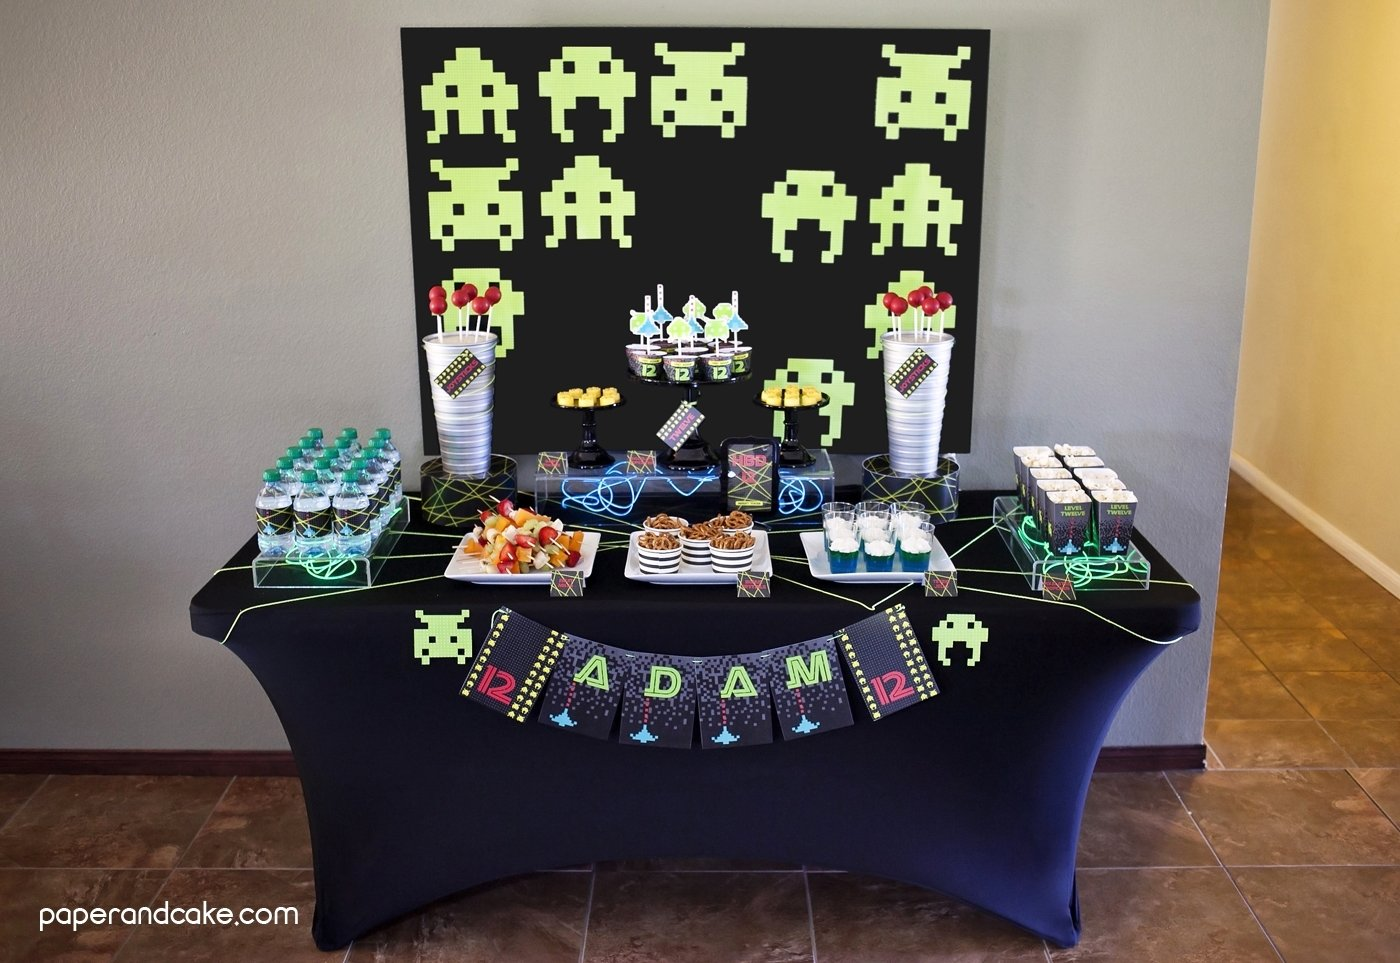 10 Lovely Video Game Birthday Party Ideas video game birthday party paper and cake paper and cake 2020